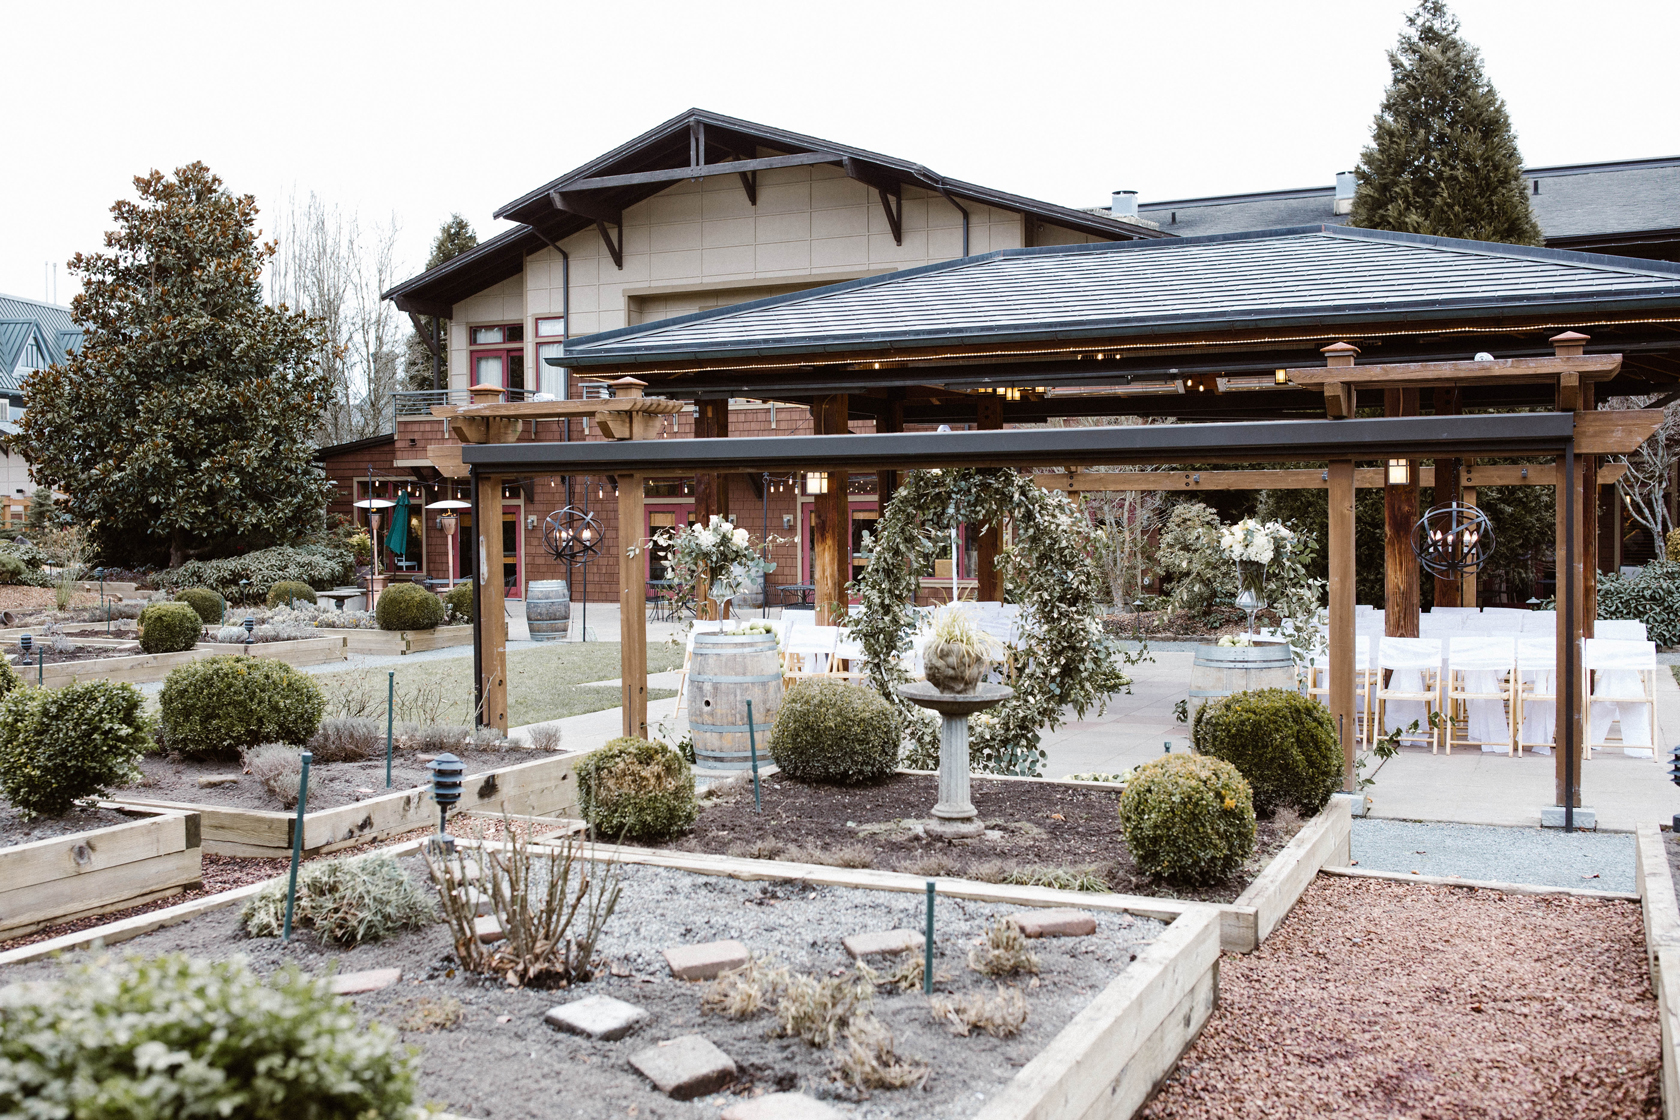 Willows+Lodge_Woodinville_2017_Weddings+In+Woodinville201.jpg